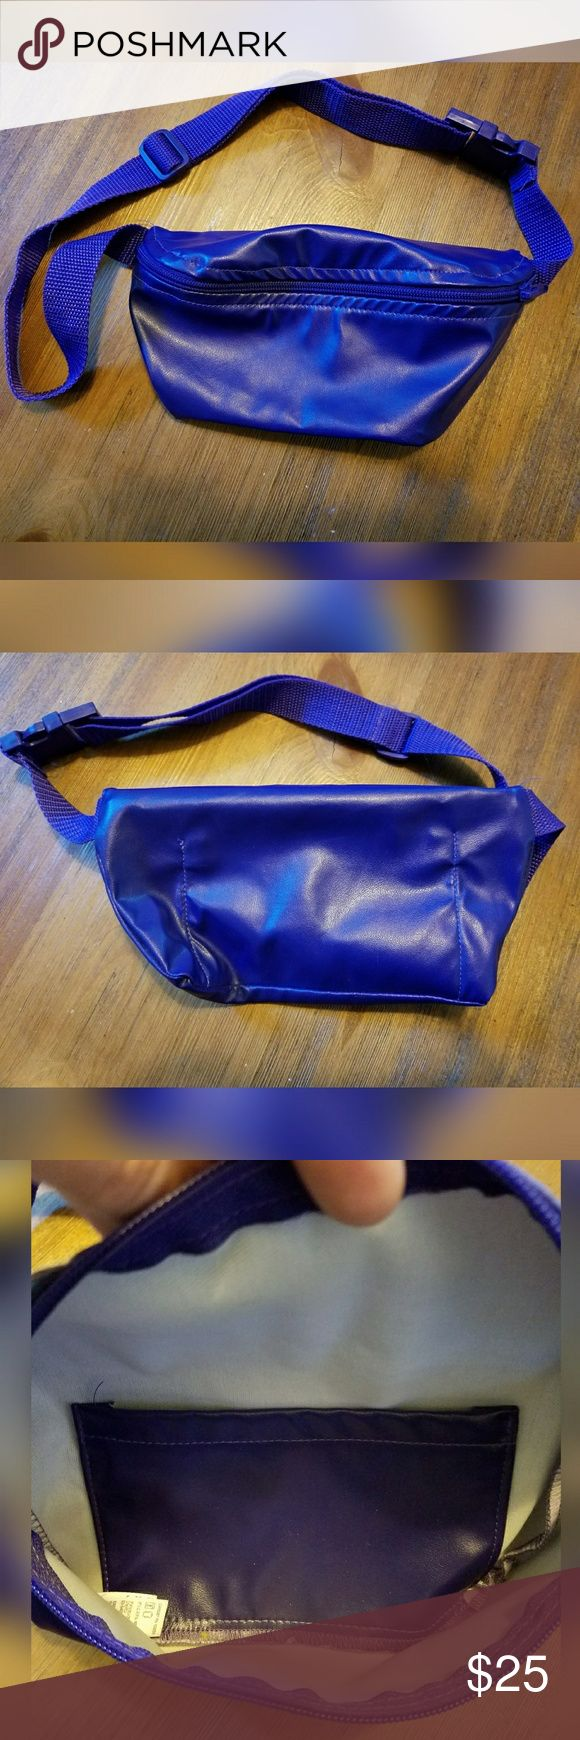 """Rad, purple, AMERICAN APPAREL, fanny pack!! Like new condition. Zipper pocket. Inside slide pocket. Adjustable waistband. 100% polyester. 8"""" wide. 4"""" tall. American Apparel Bags"""